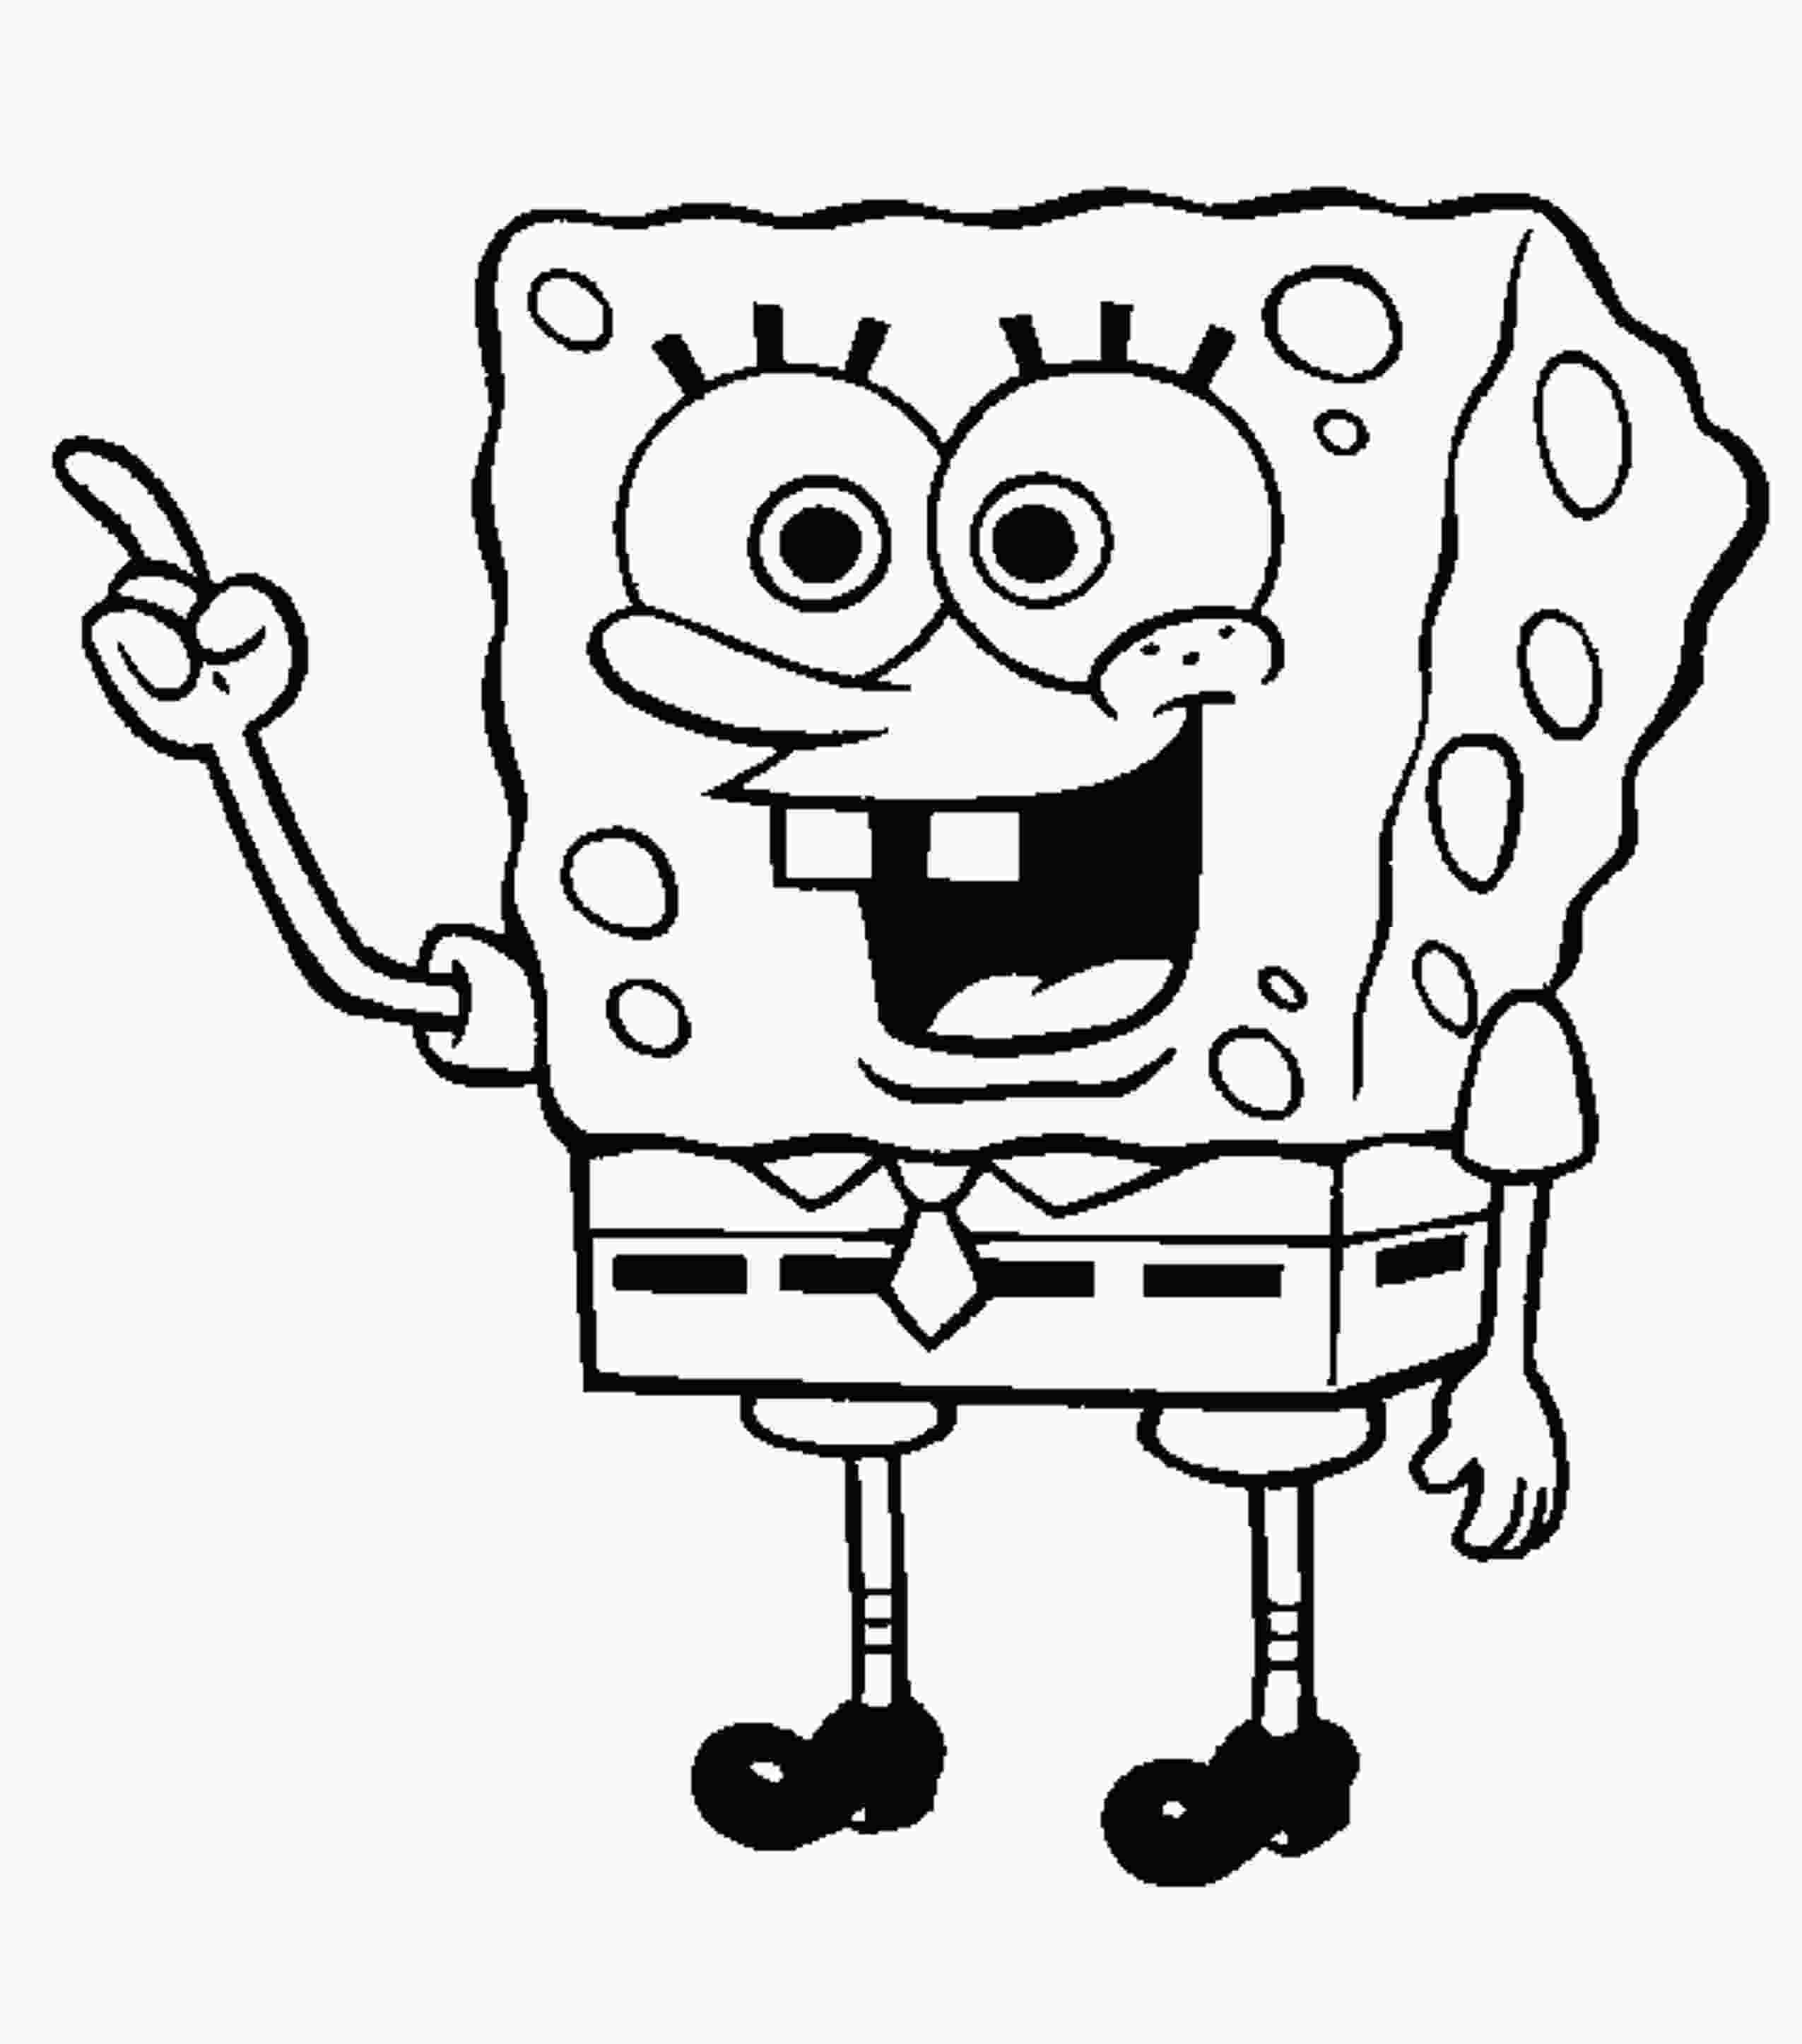 spongebob coloring kids cartoons in black and white yahoo image search